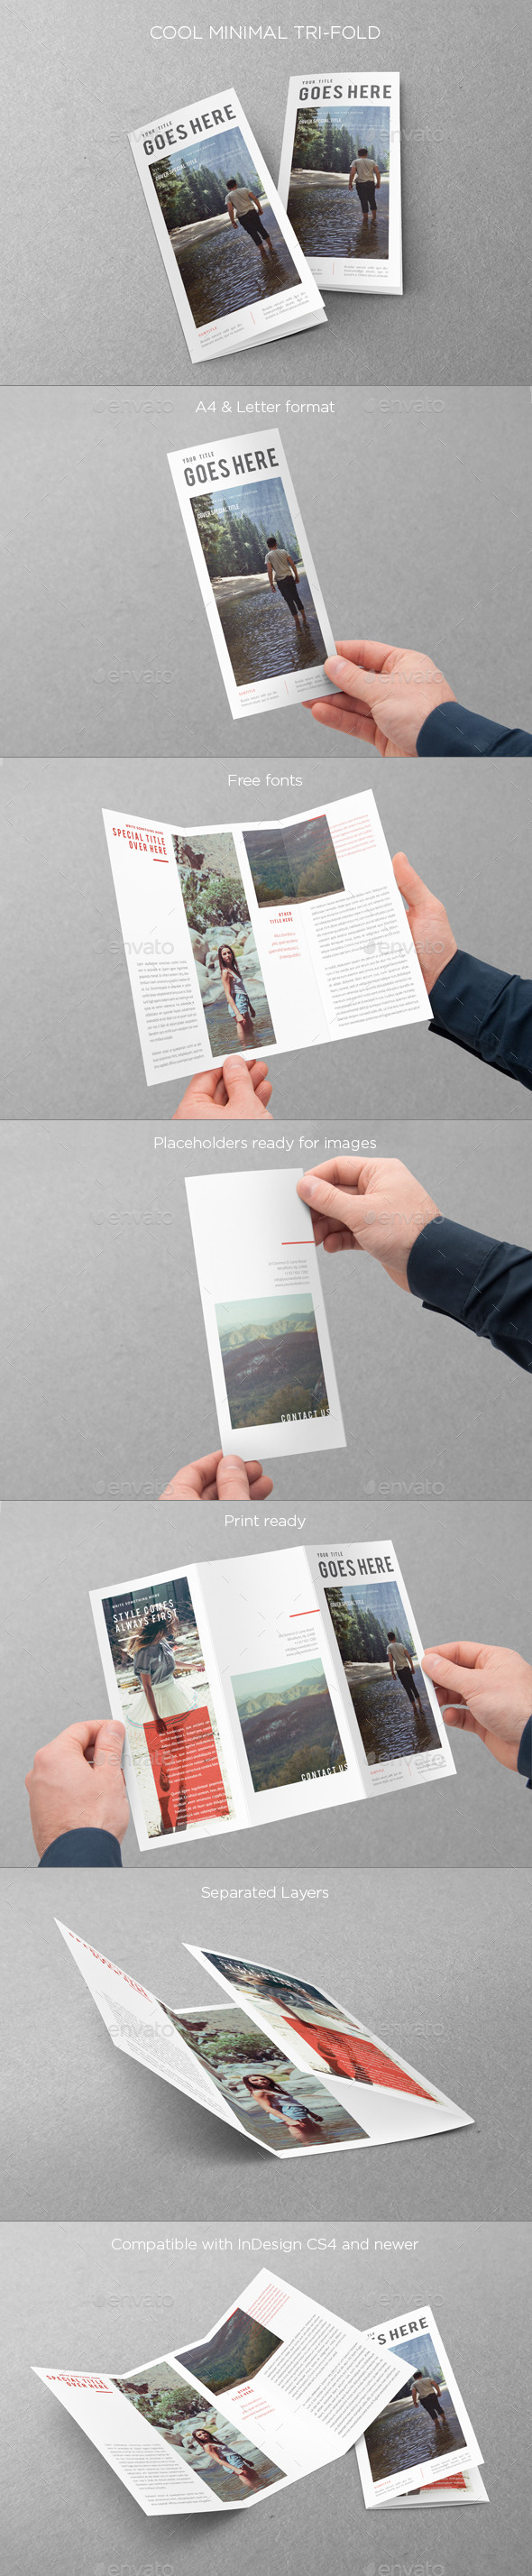 GraphicRiver Cool Minimal Trifold 9827049